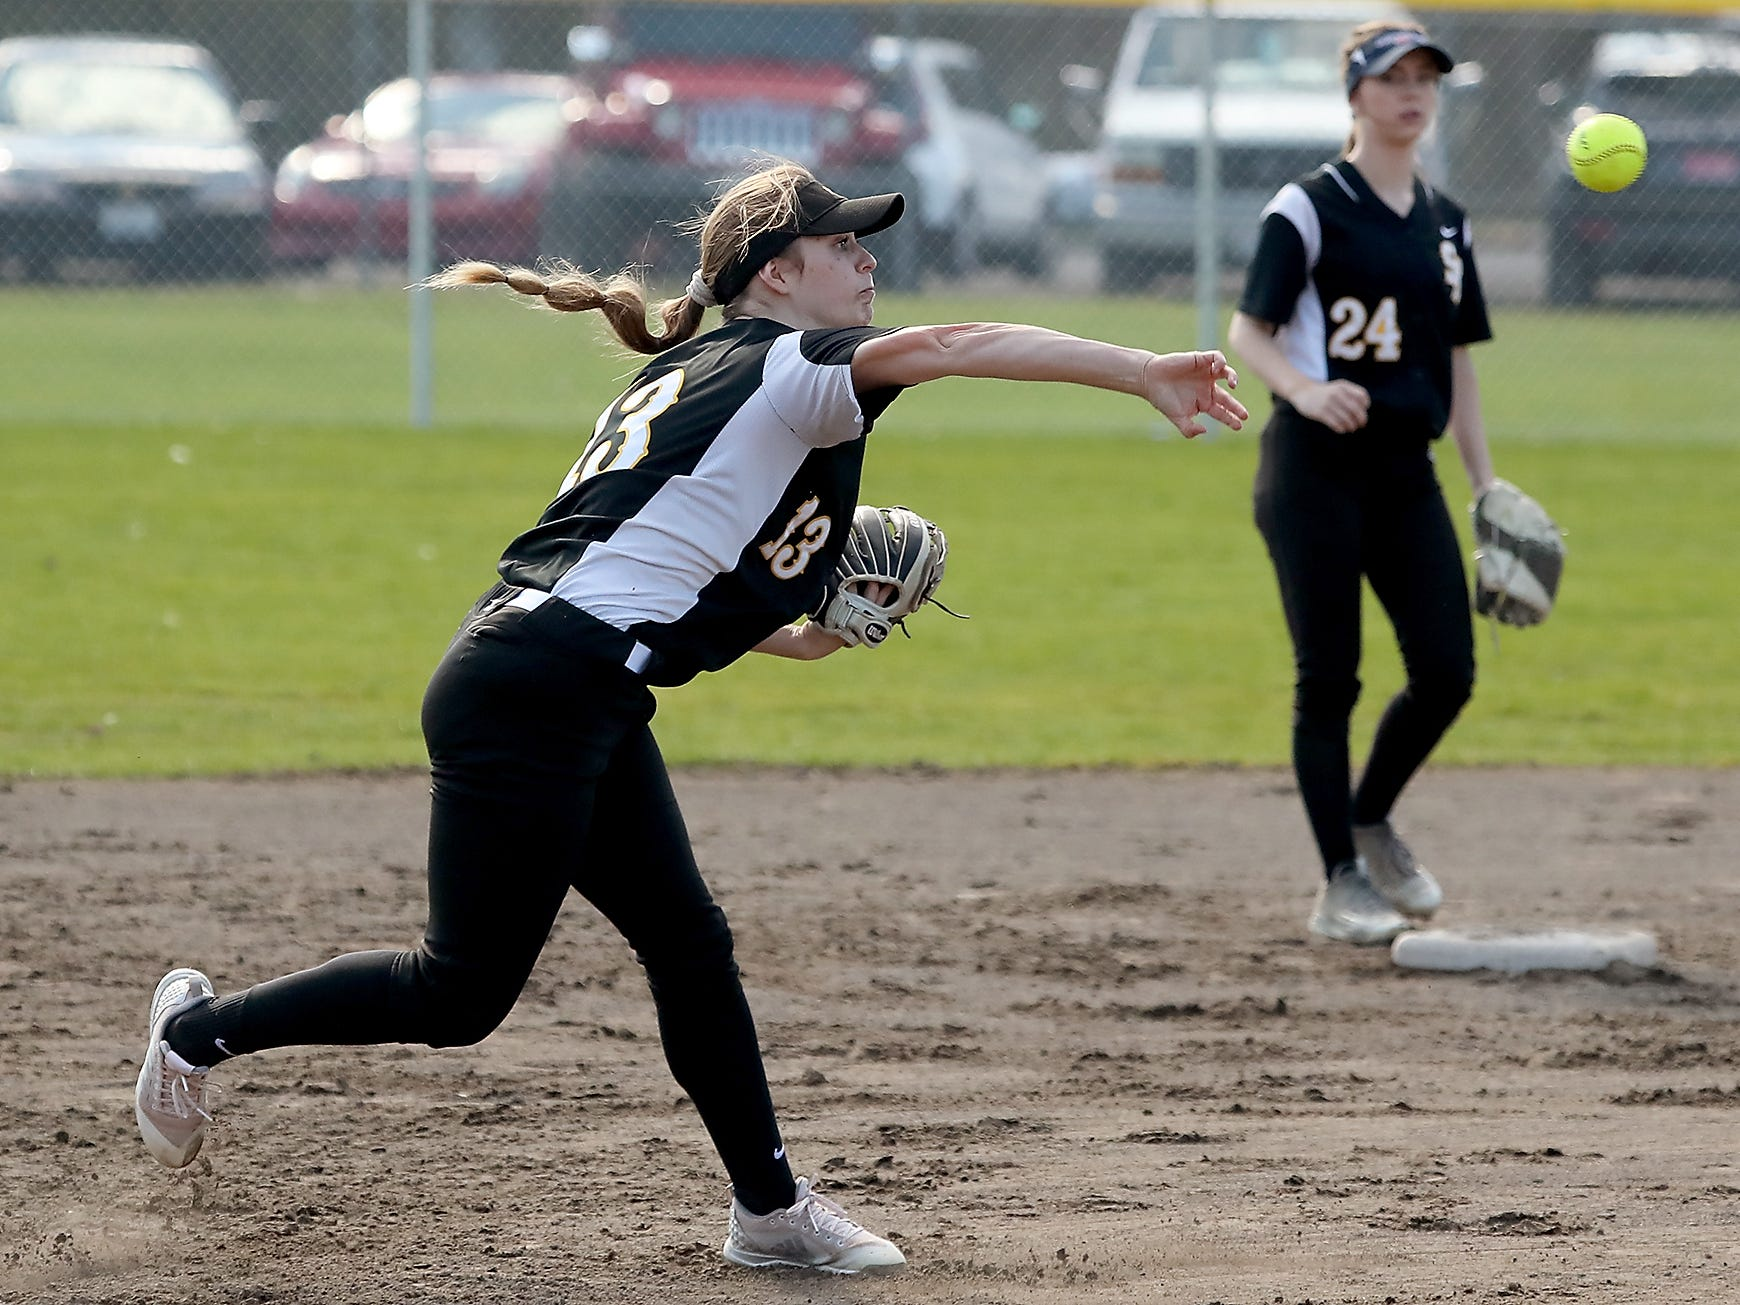 South Kitsap's Kaitlynn Johnston fires a throw to first against Puyallup on Tuesday, March 26, 2019.